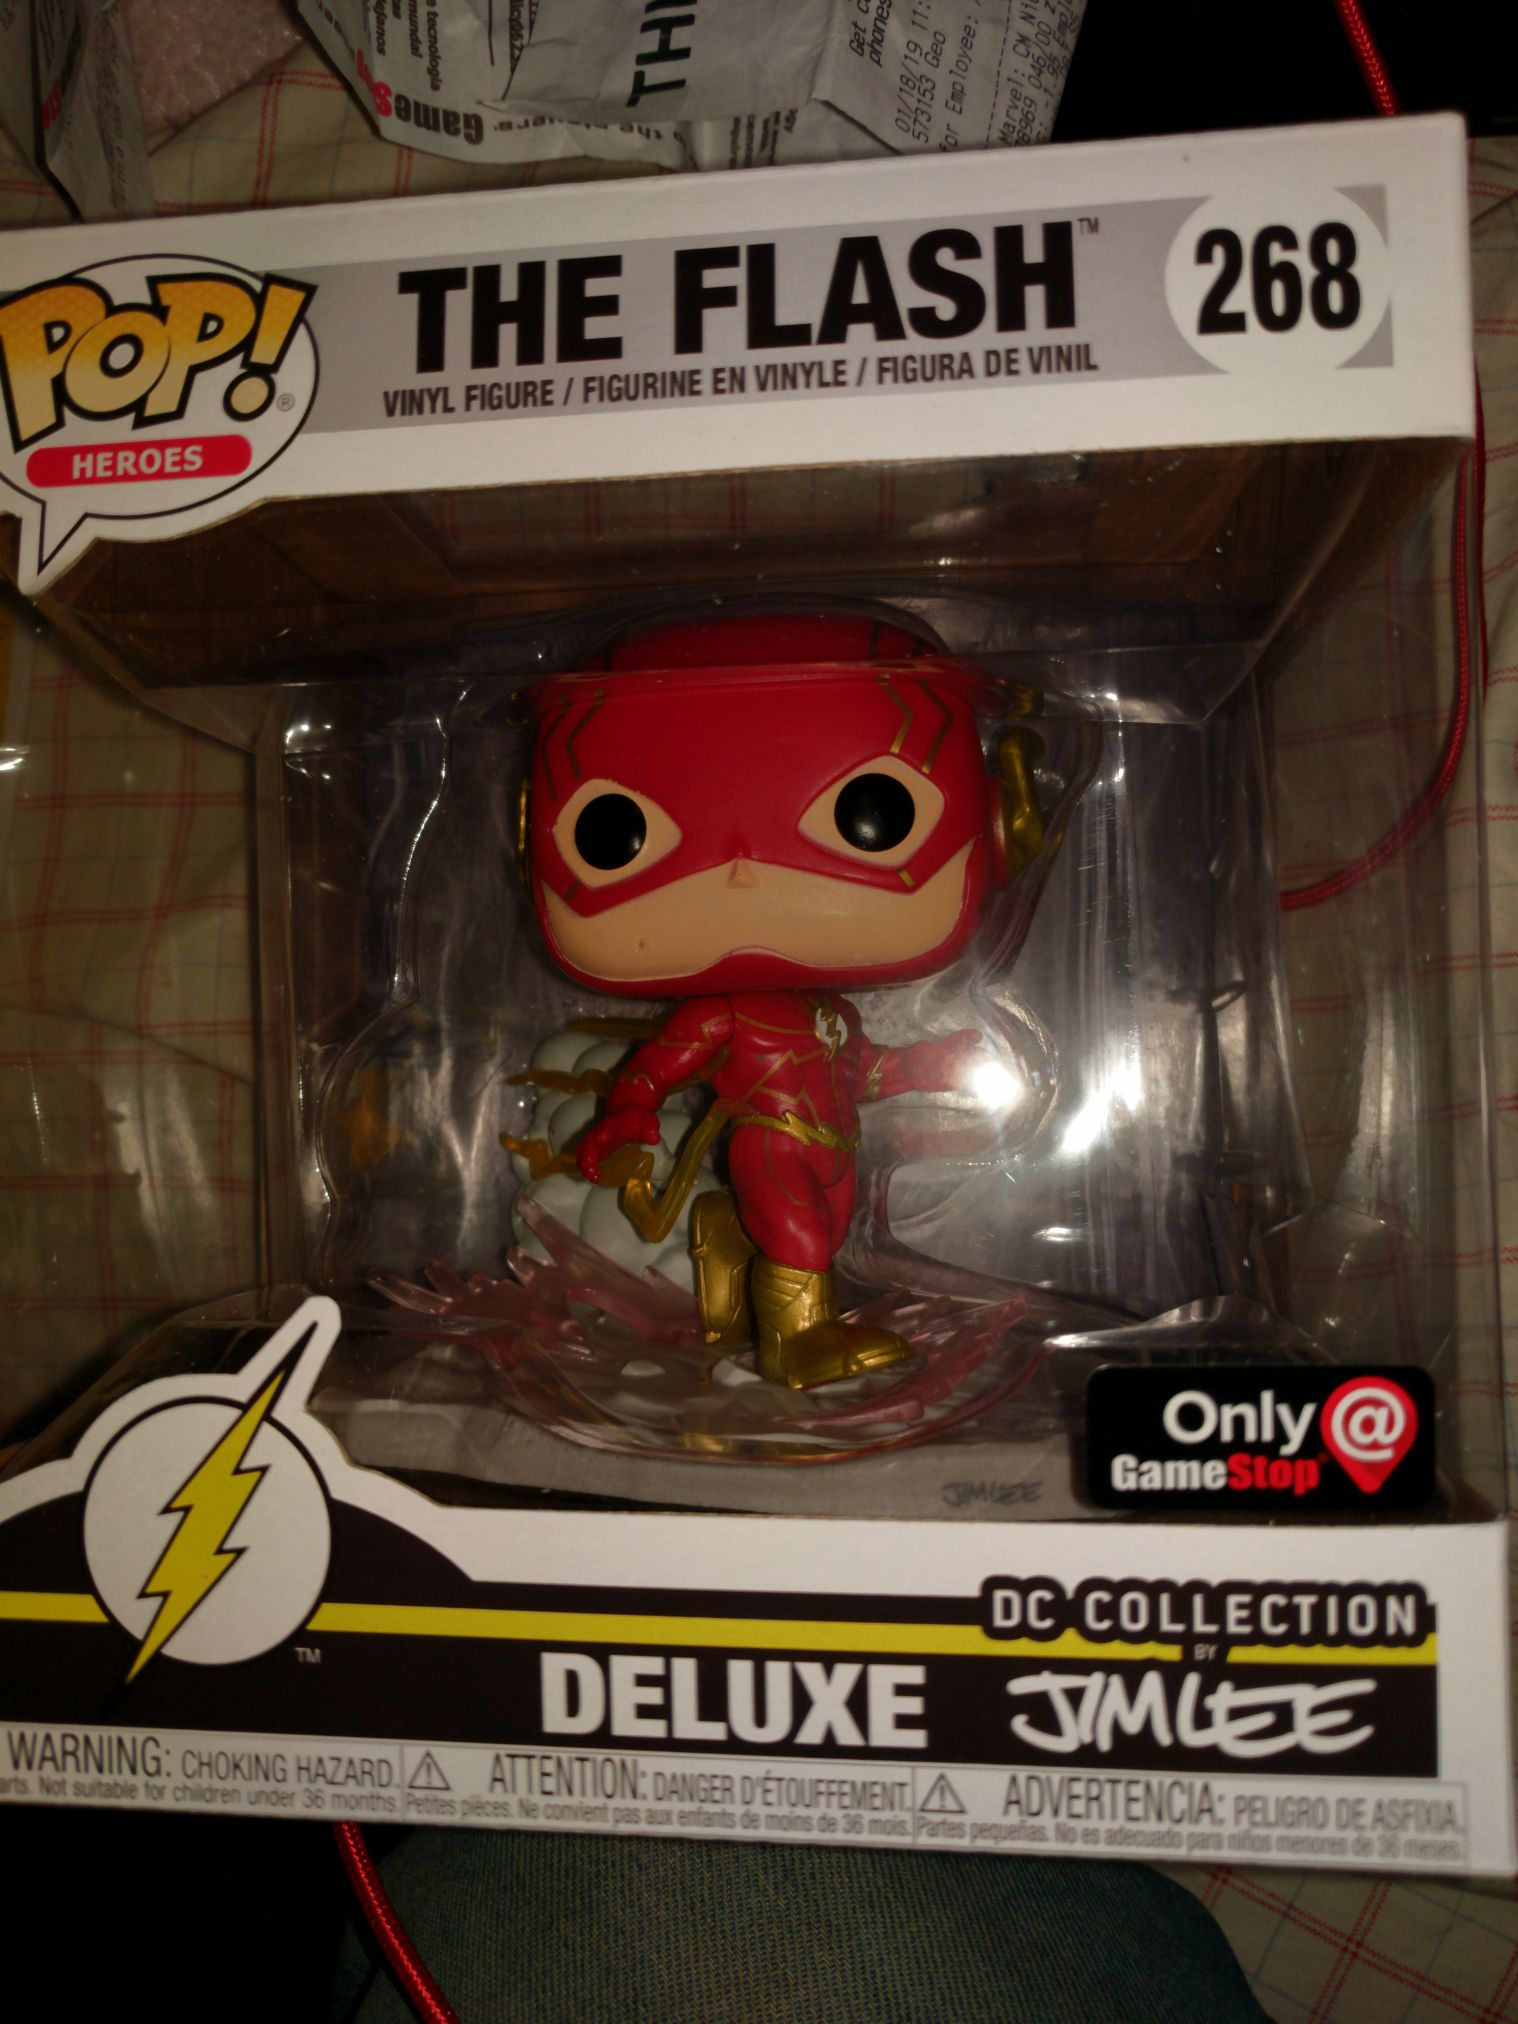 Jim Lee The Flash Funko - POP! Heroes (268) front image (front cover)